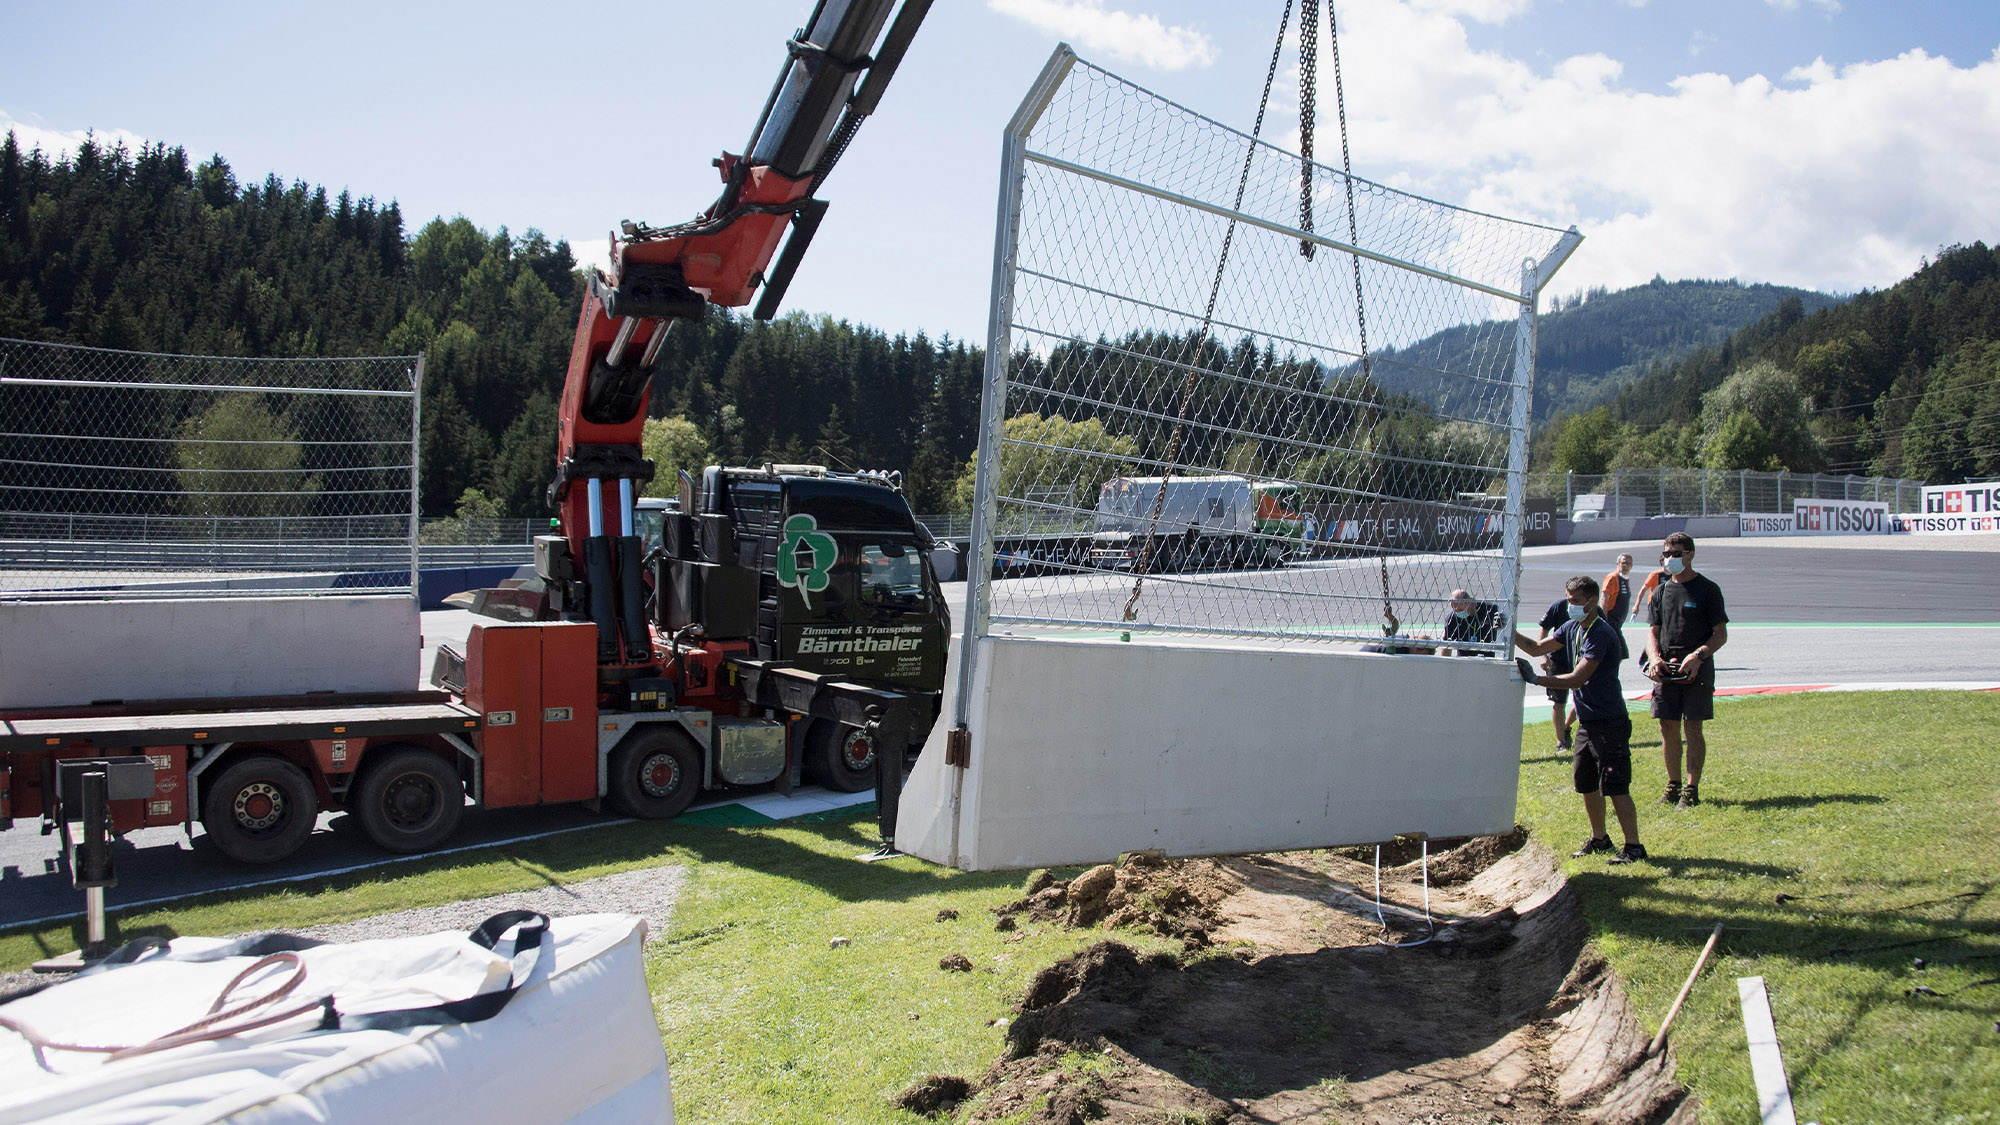 New safety wall being installed at the Red Bull Ring following the MotoGP Austrian GP crash between Franco Morbidelli and Johann Zarco